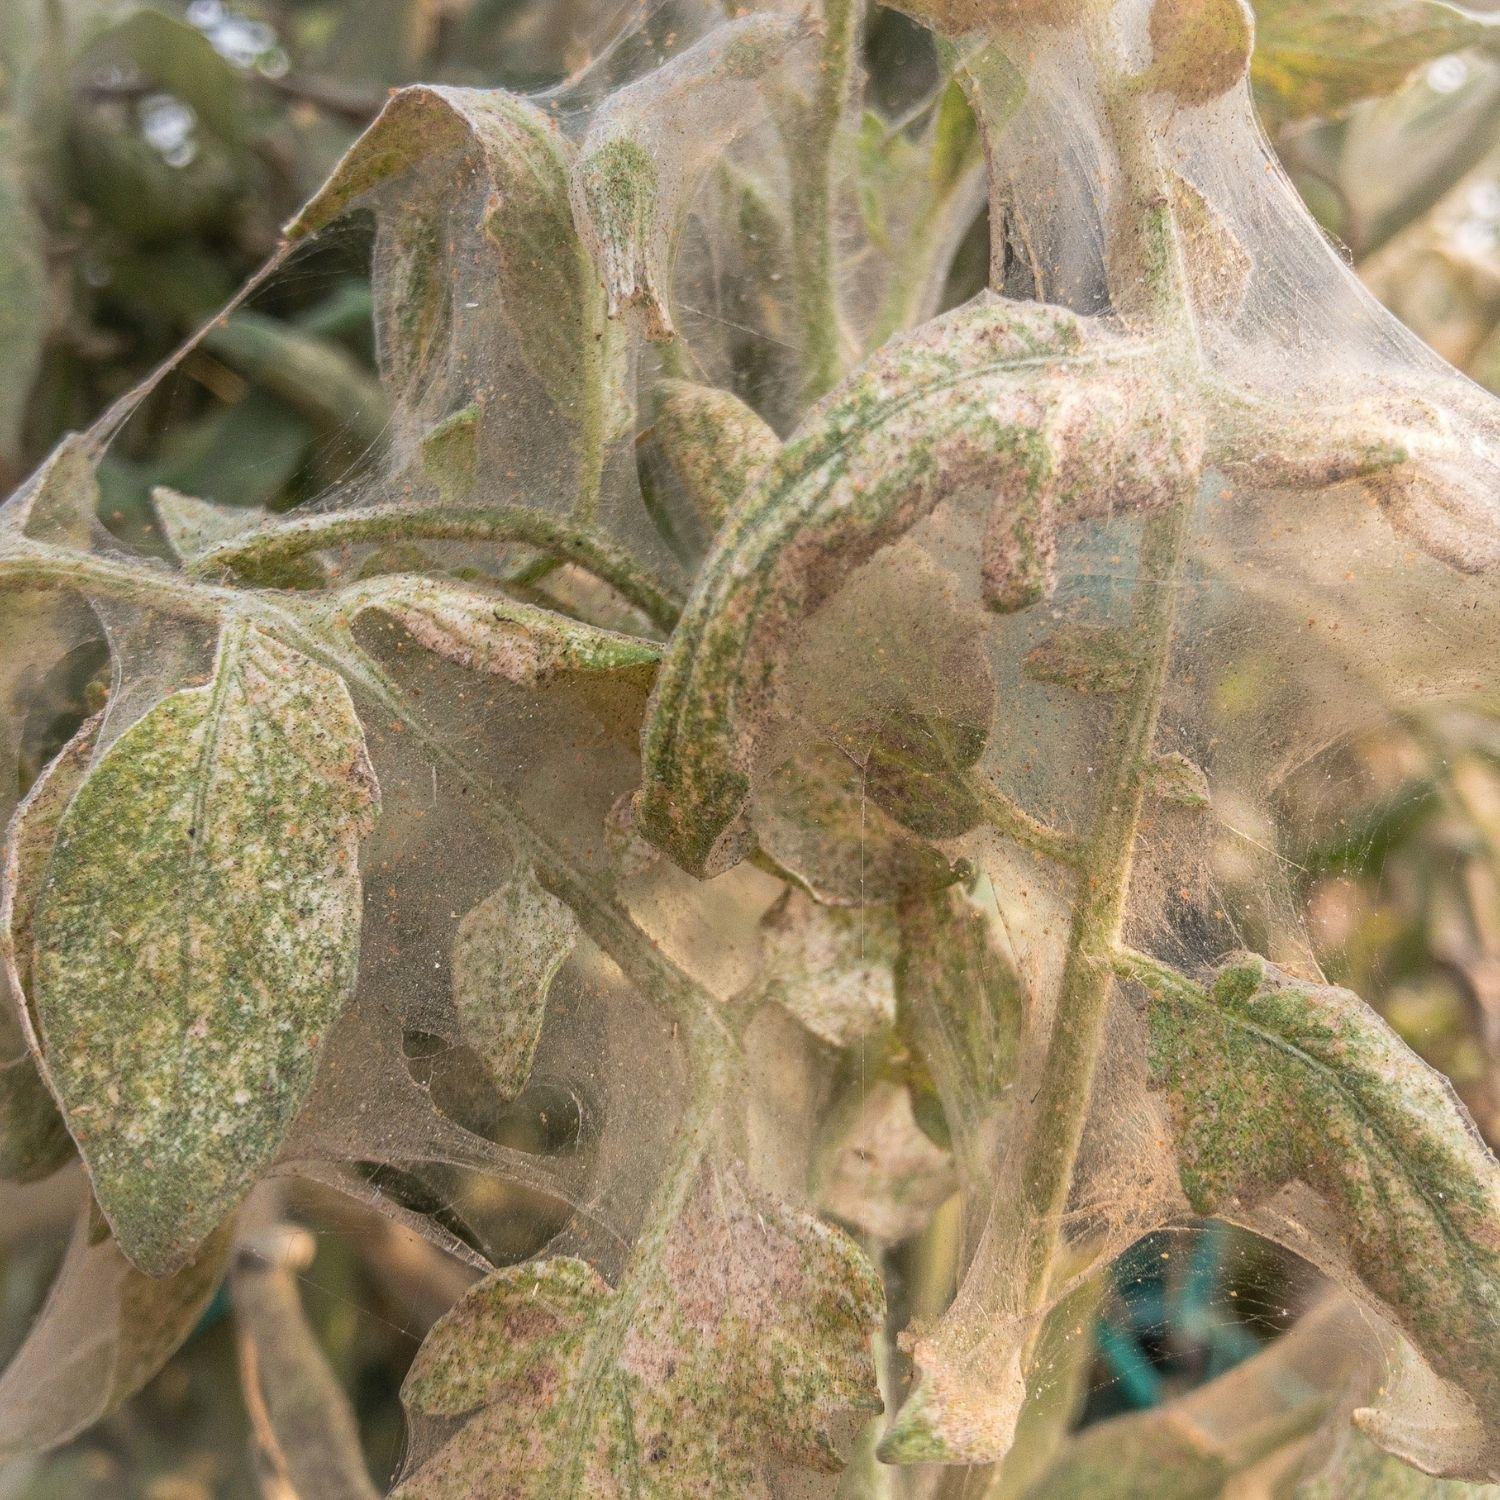 Webbing from spider mites covering tomato plants